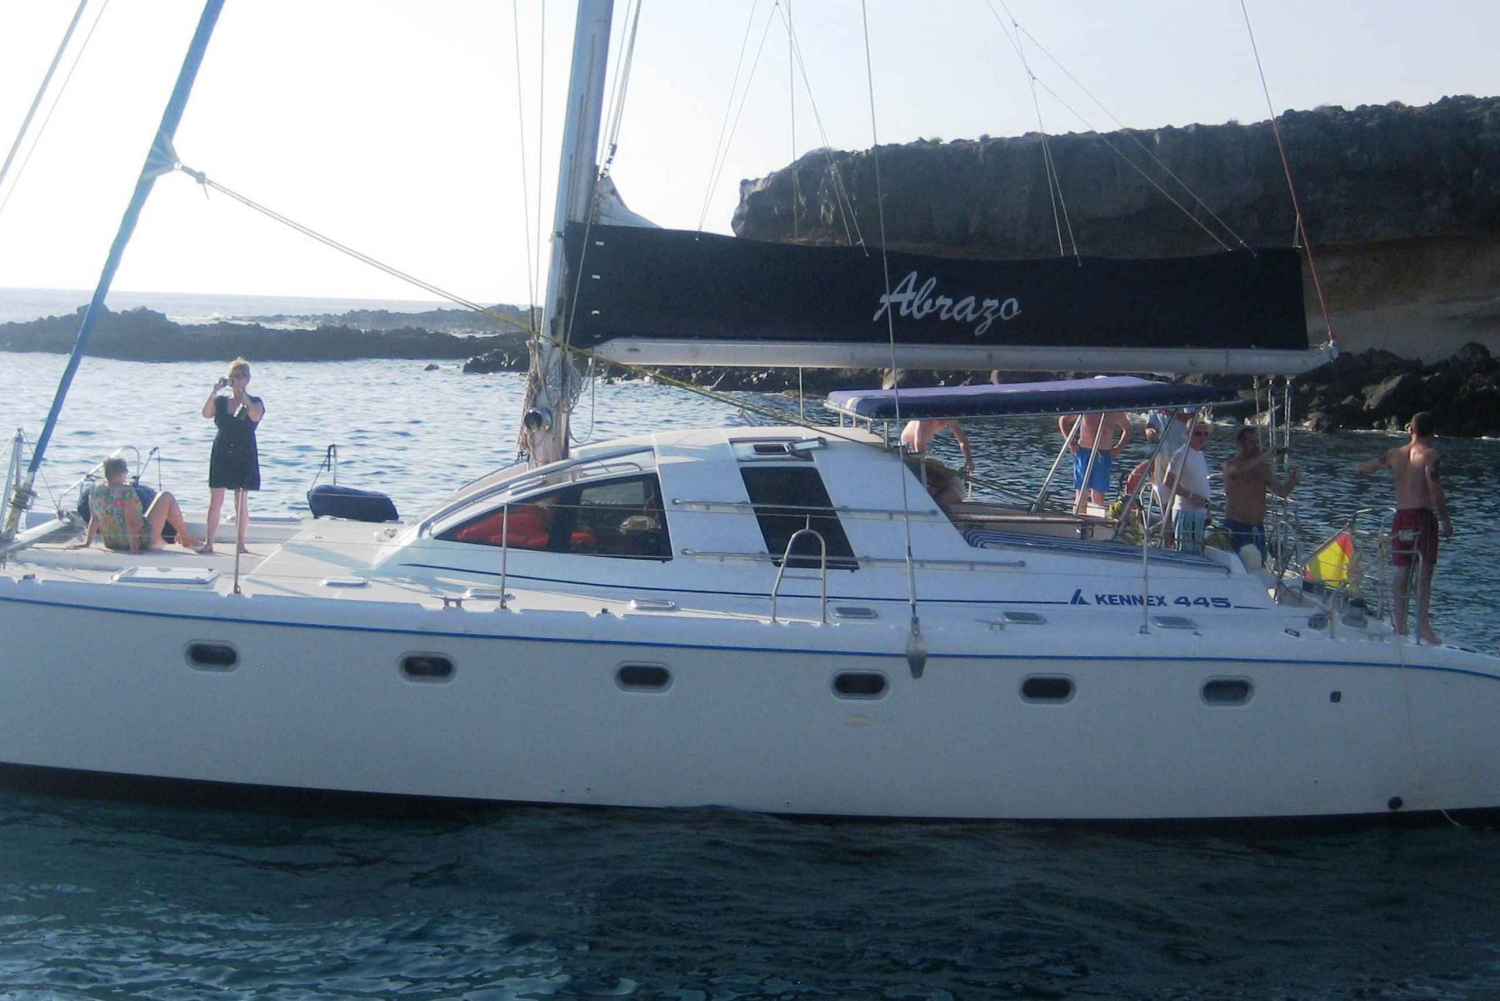 Abrazo Catamaran Sailing and Whale Watching Excursion